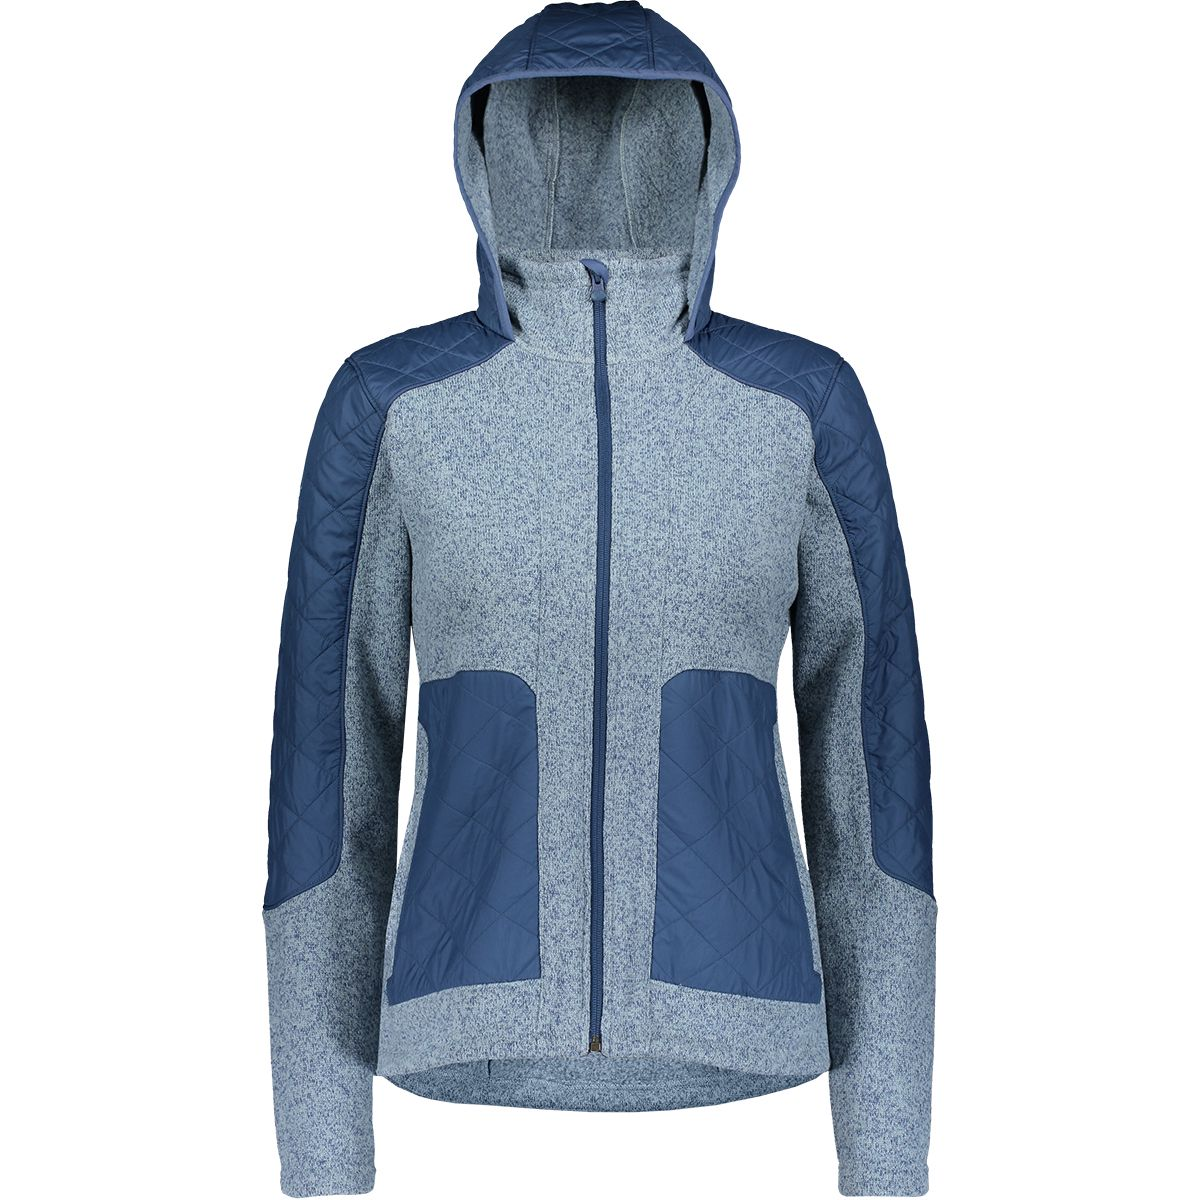 Scott Damen Defined Optic Jacke (Größe XS, Blau) | Fleecejacken > Damen